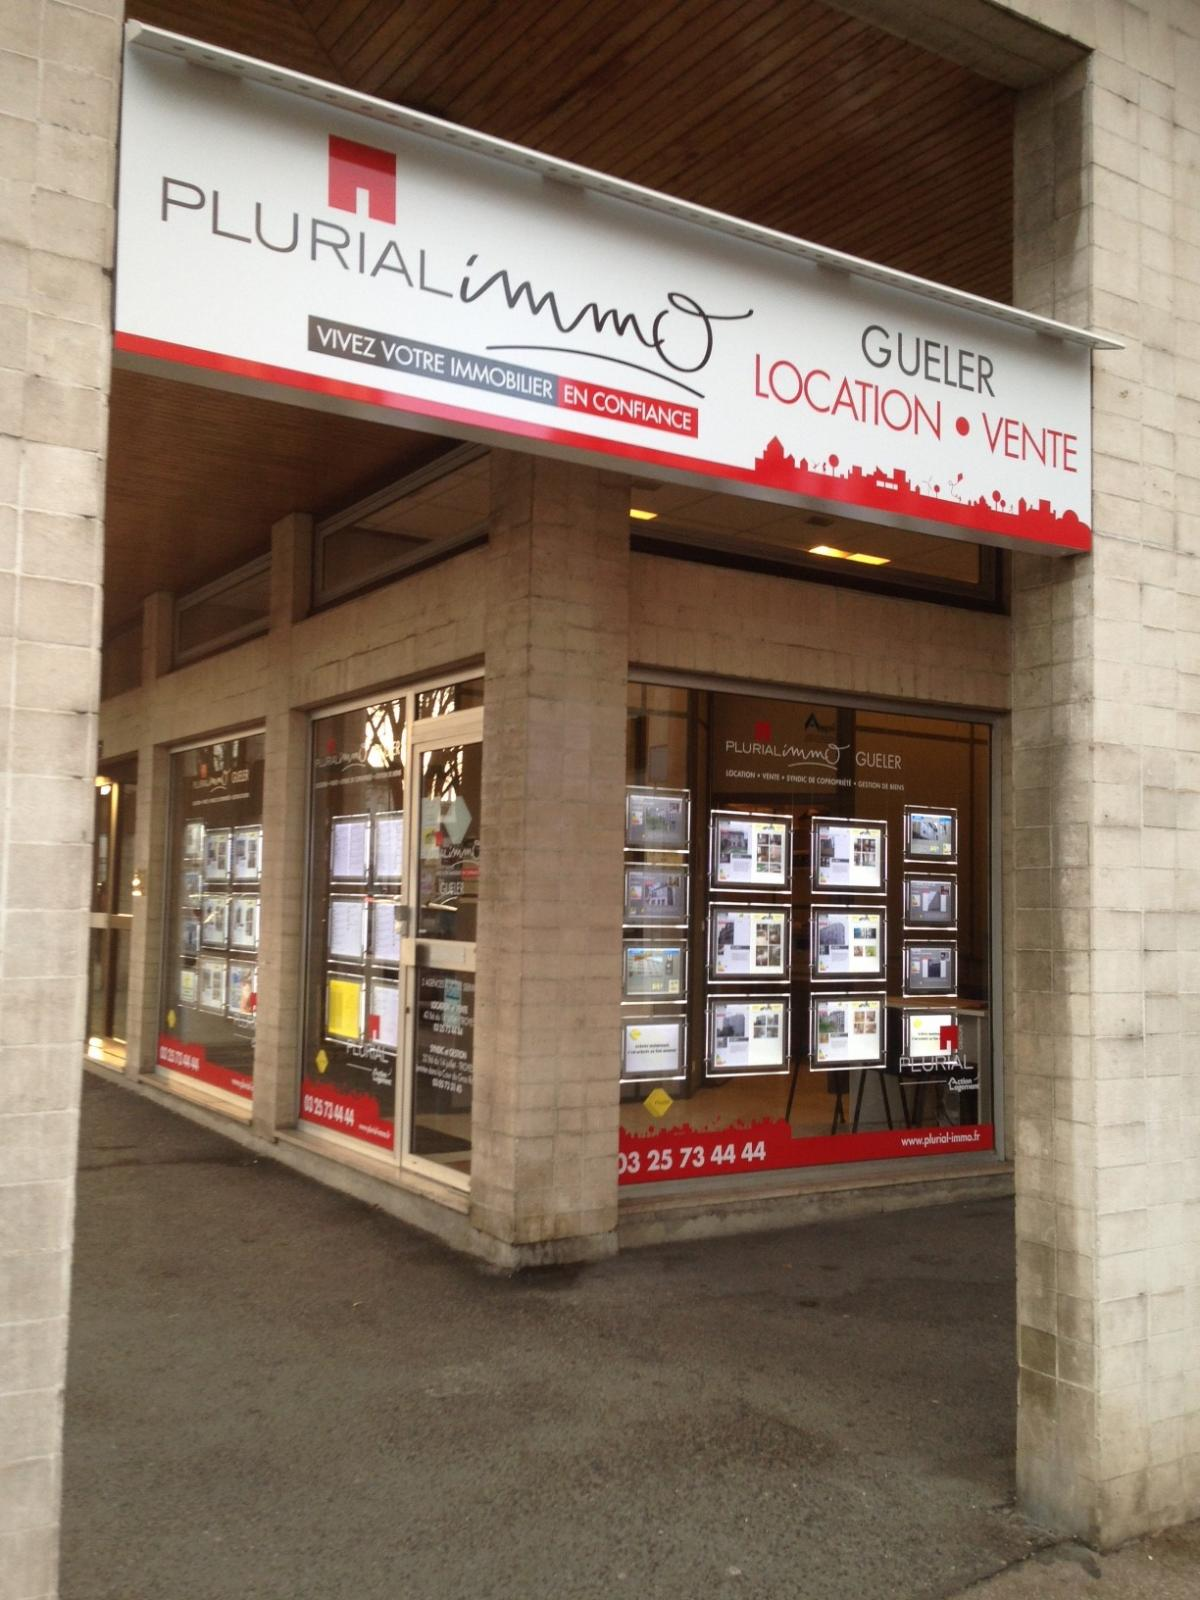 L agence gueler de troyes passe sous le pavillon plurial for Agence immo troyes